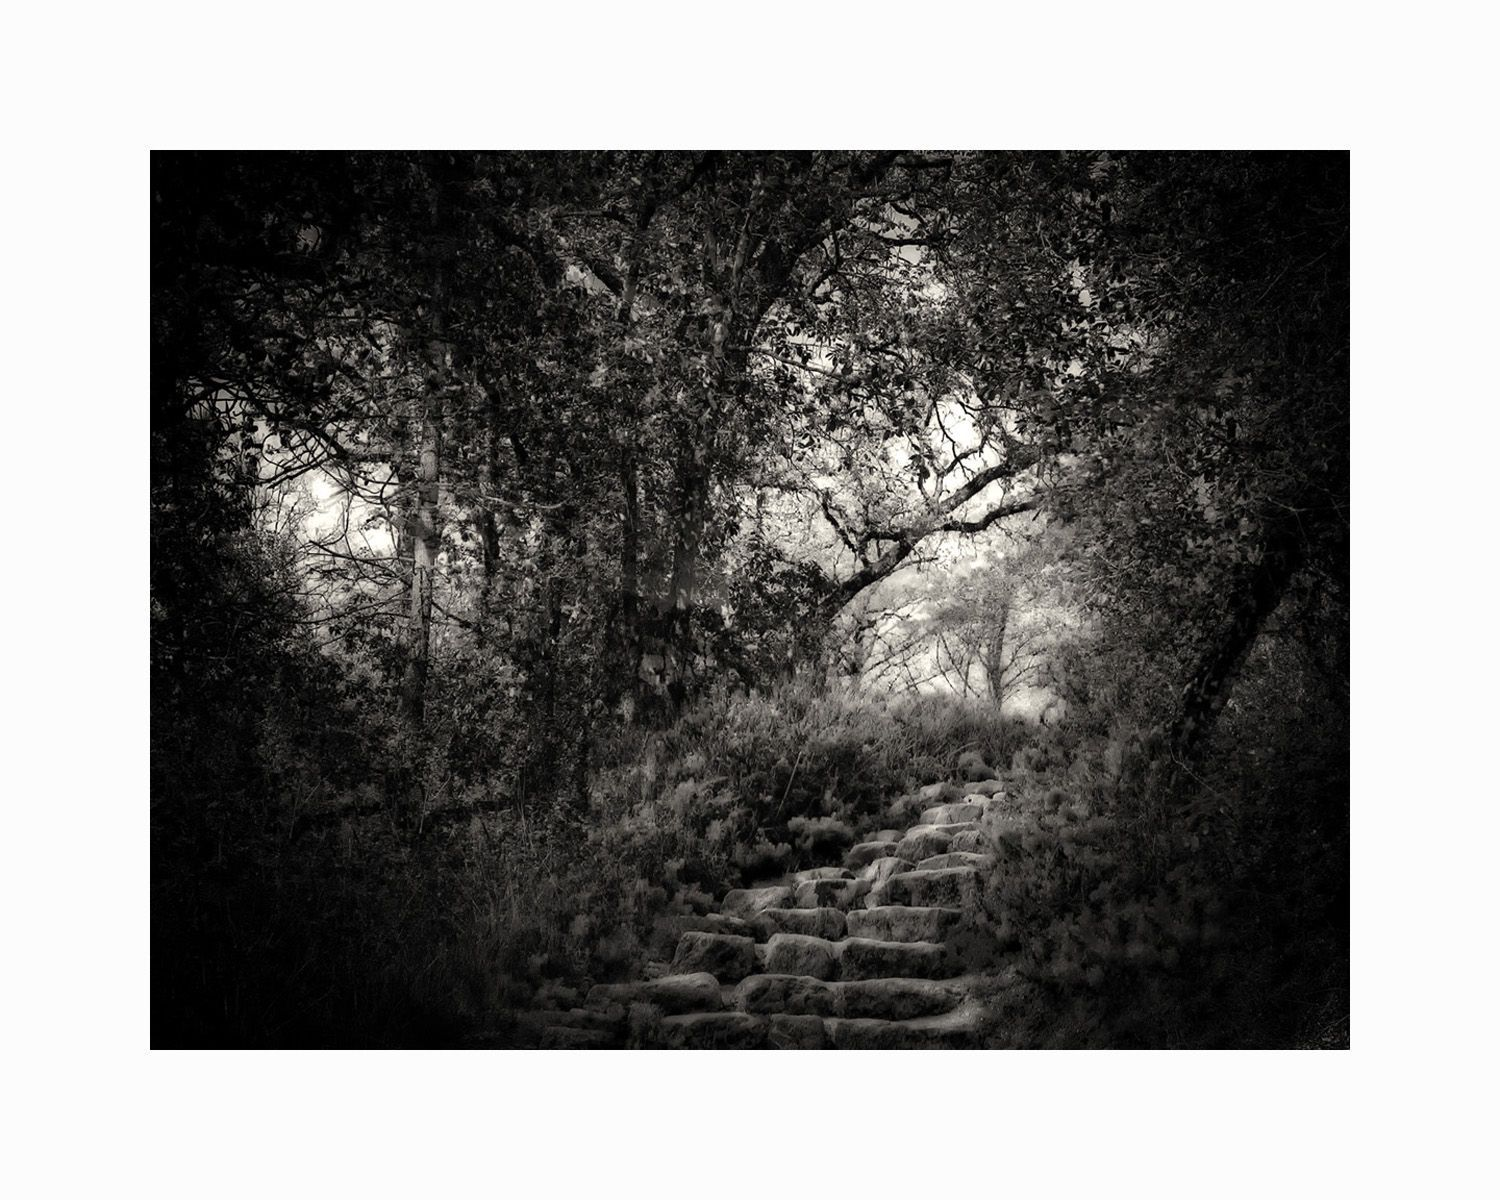 1steps_in_the_forest16x20_b_w